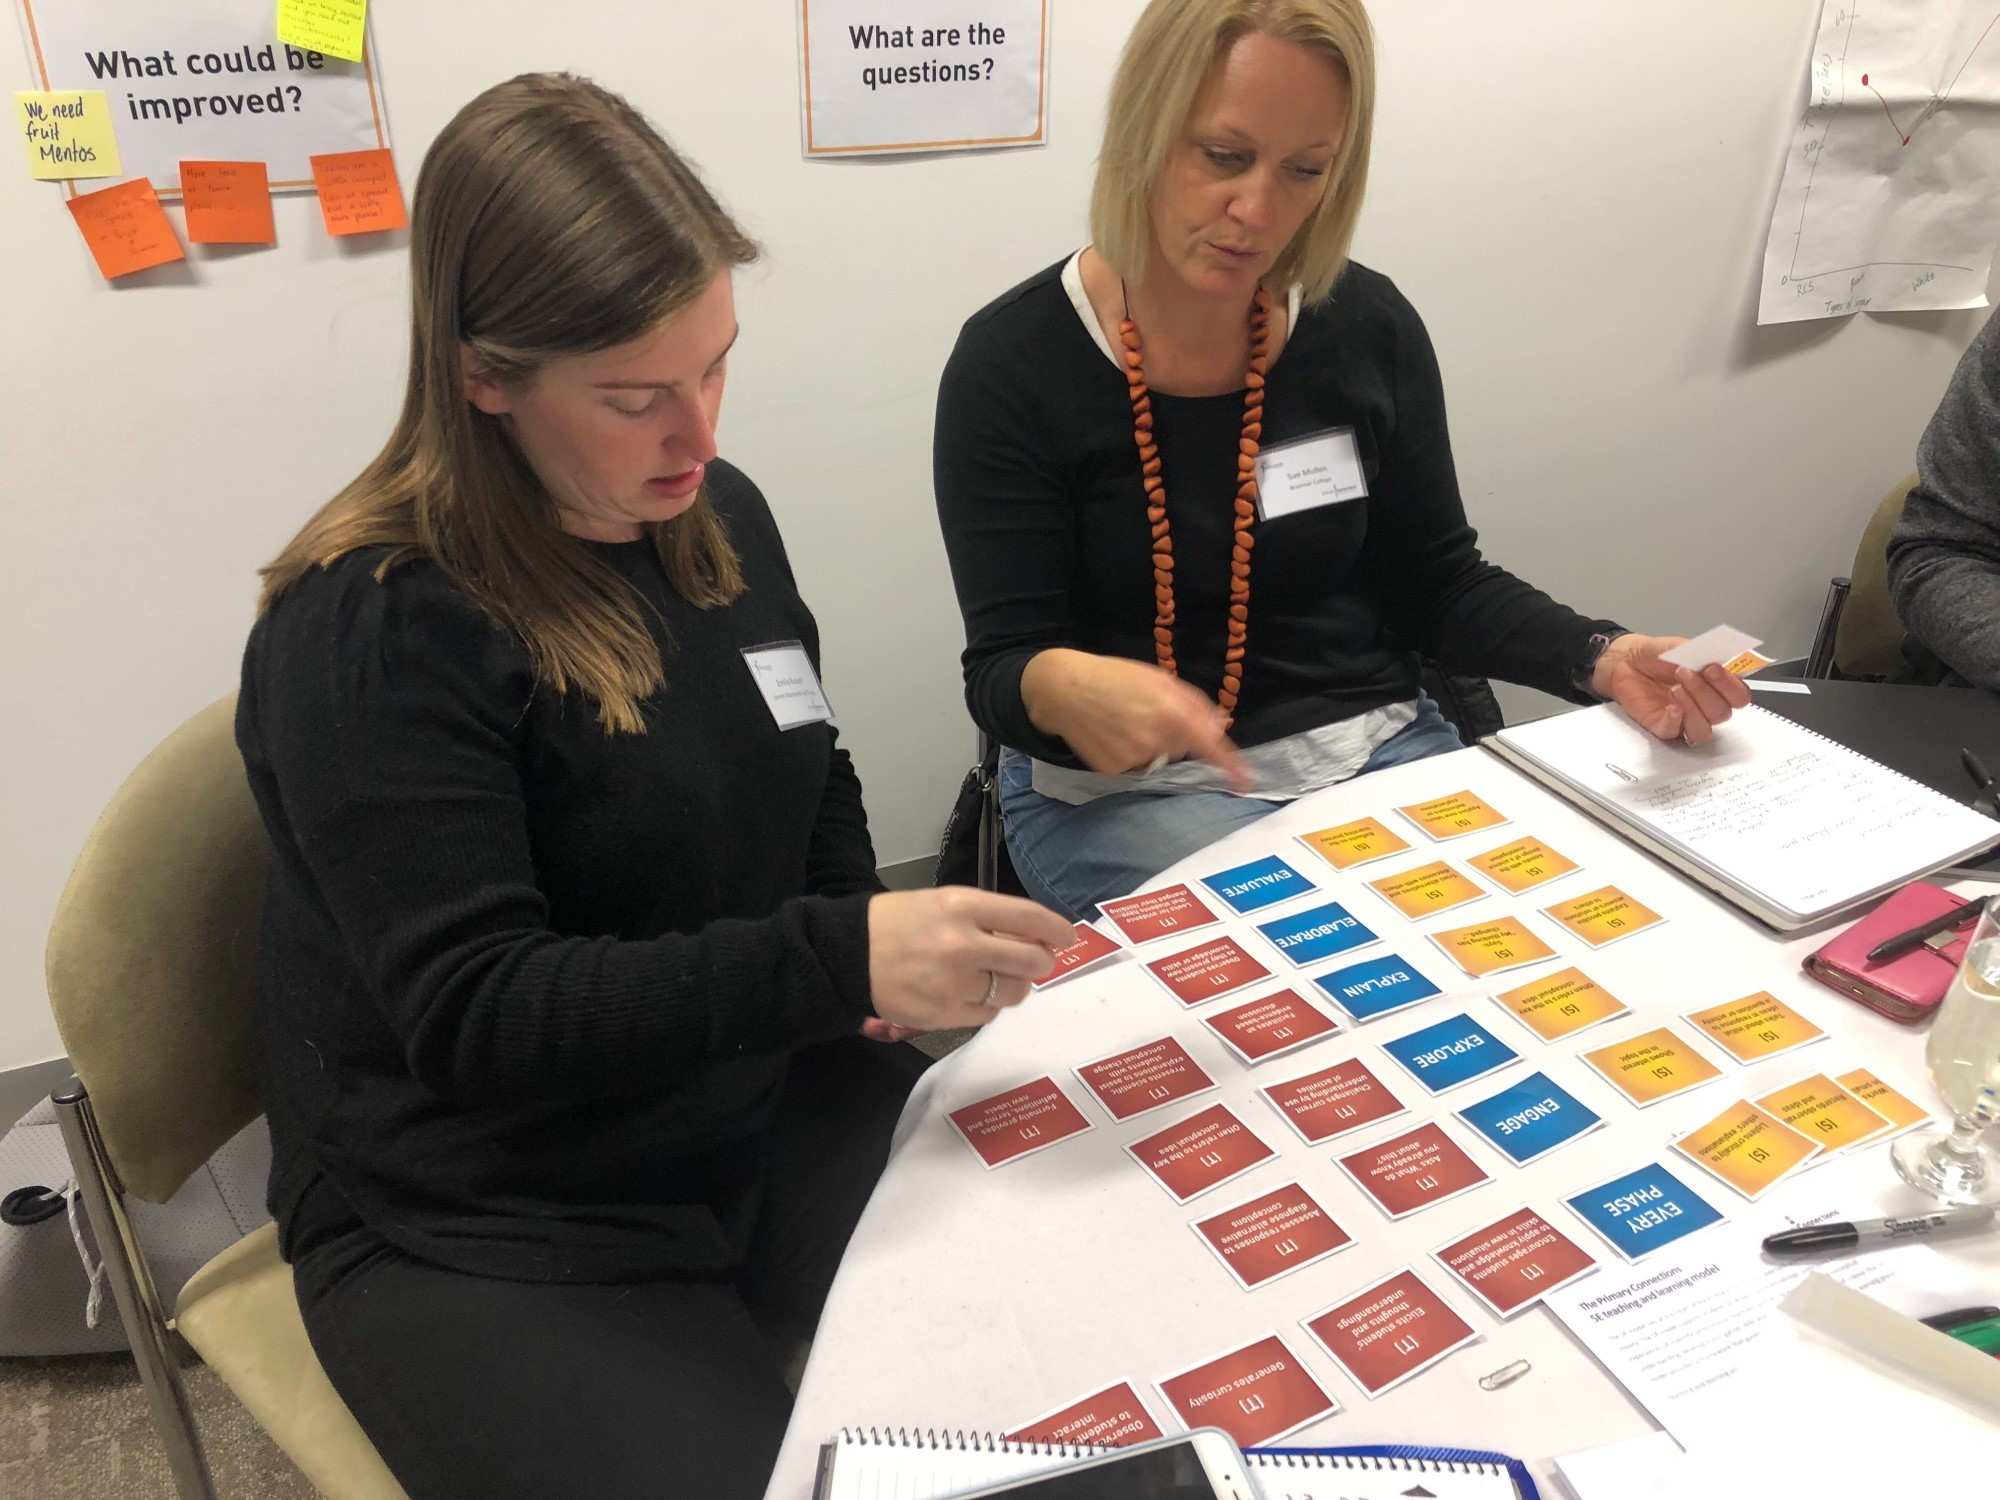 Image of teachers engaged in professional learning activities